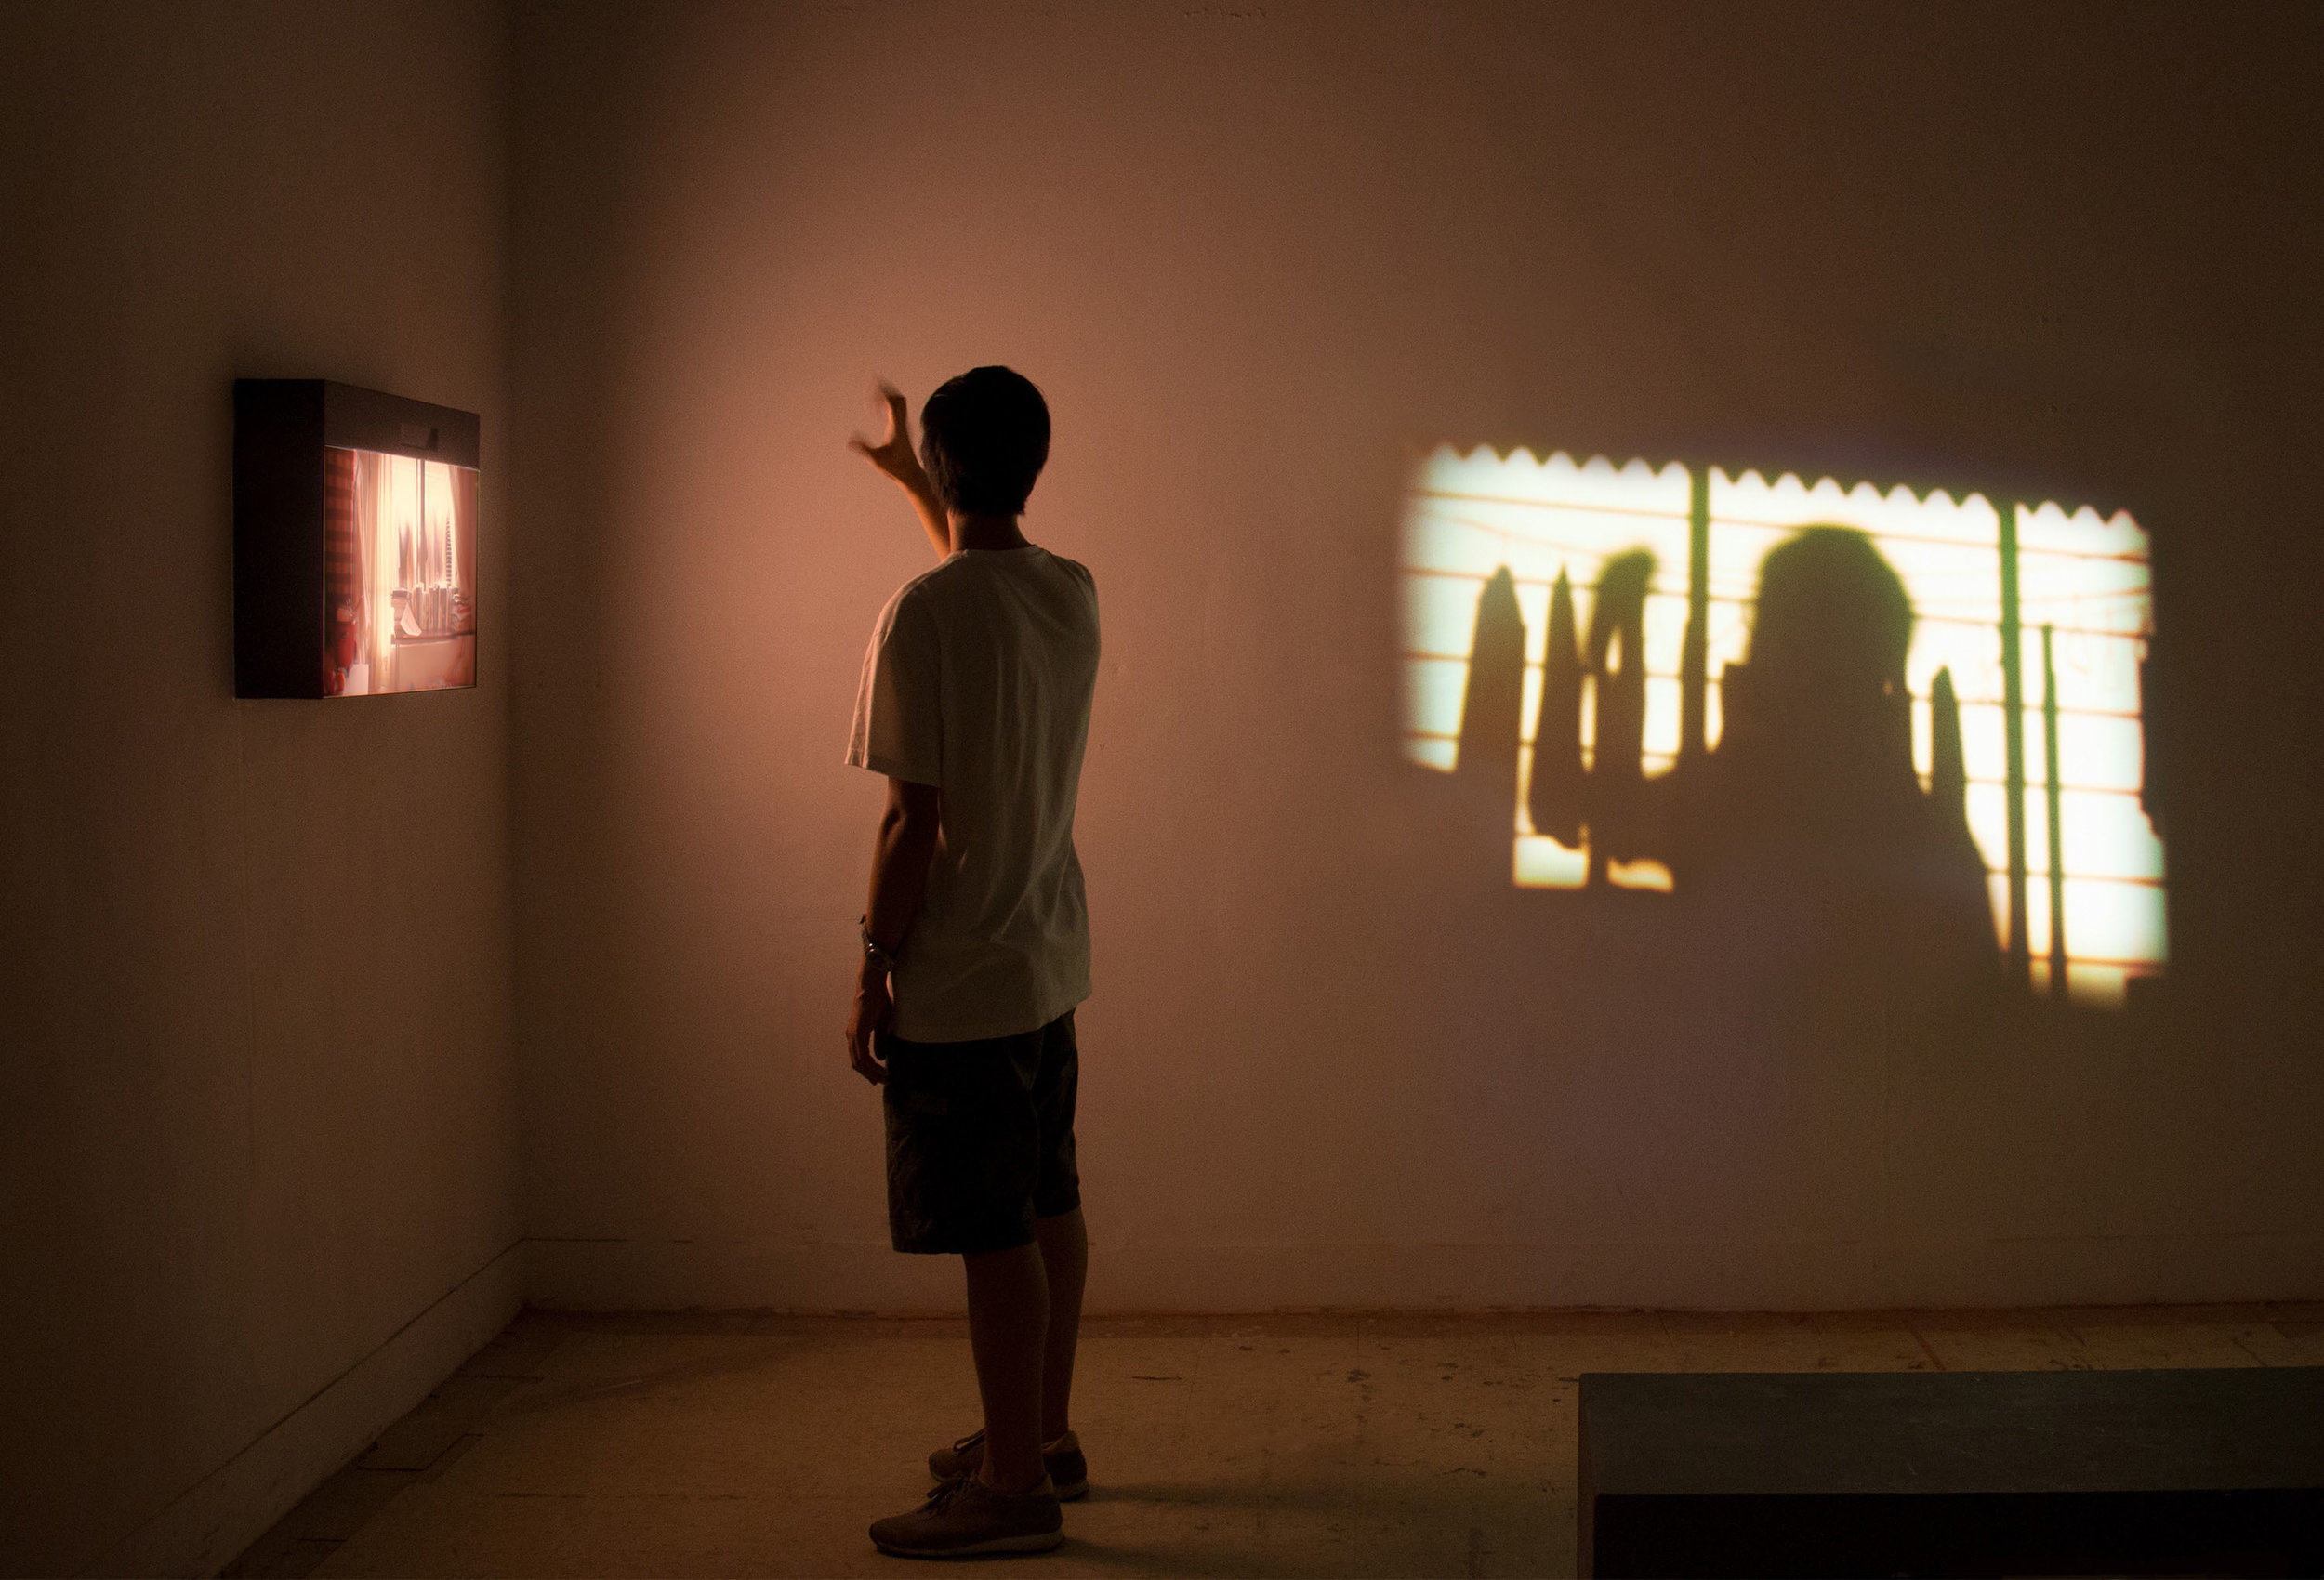 Tsai Fang, 'With the Light', 2017, video, light box. Image courtesy the artist and Fresh Trend.